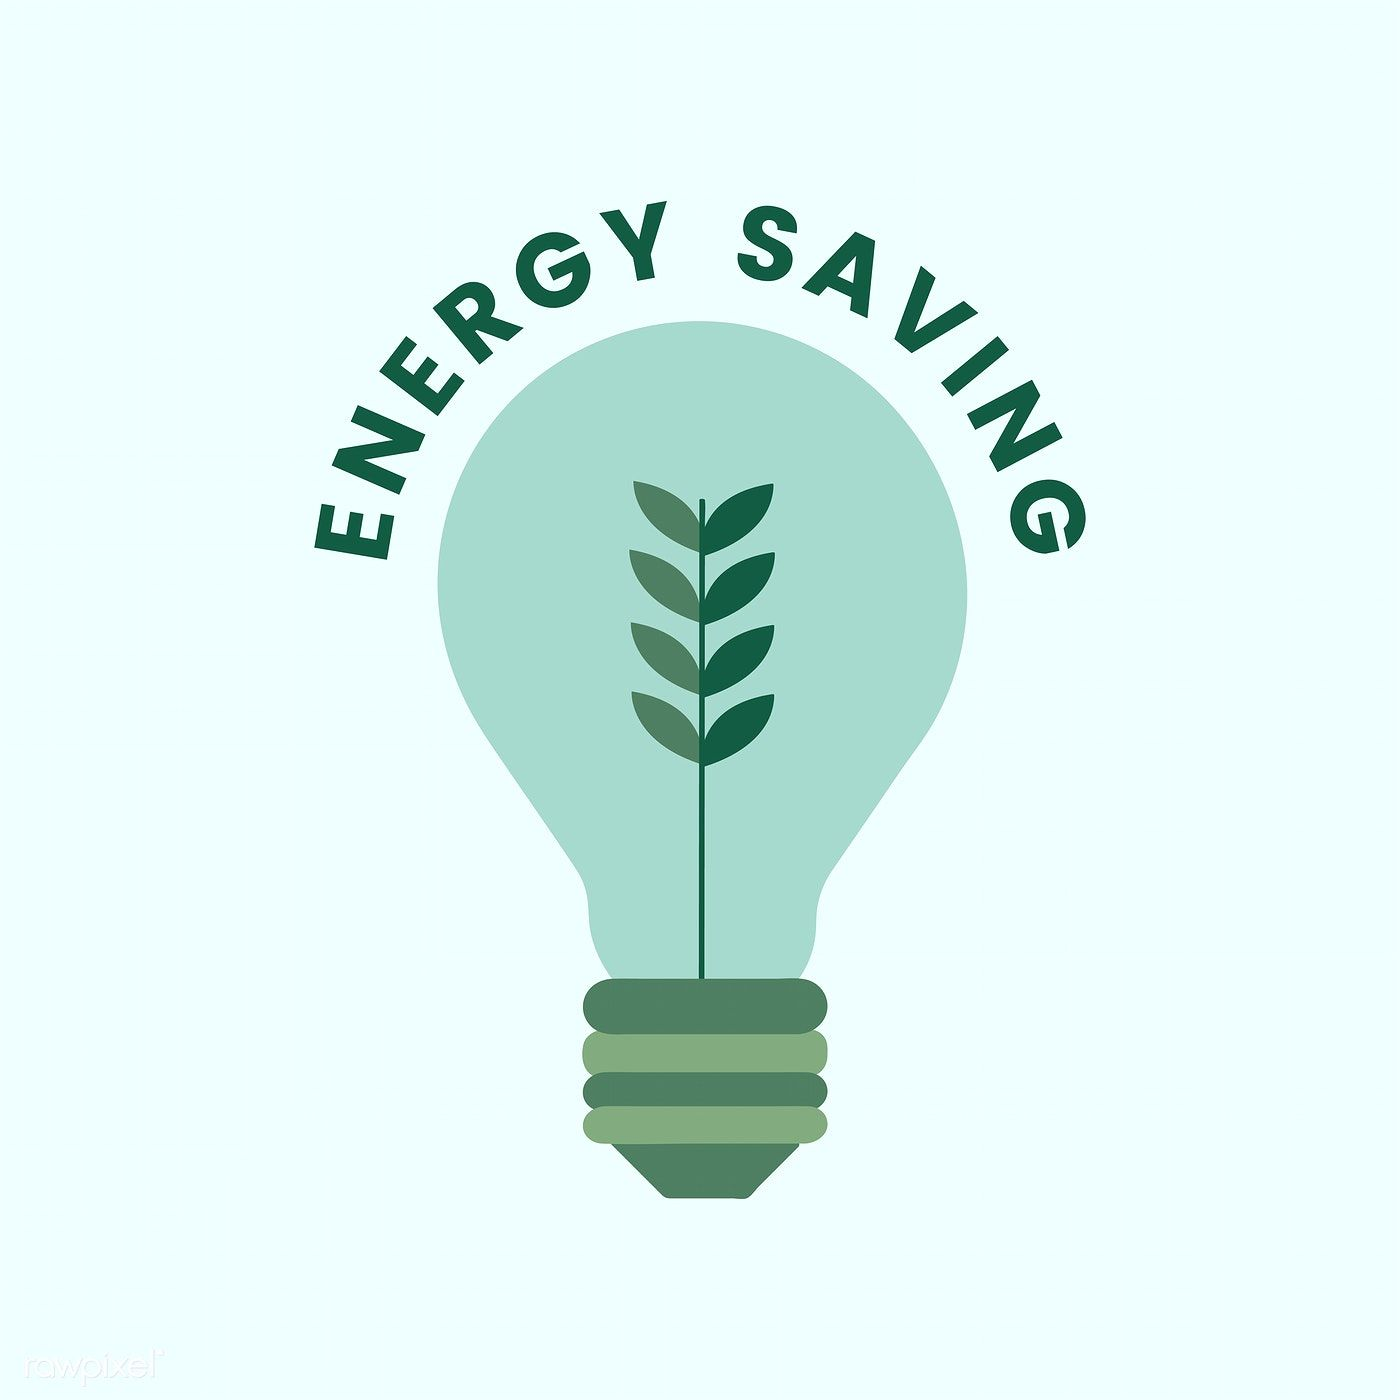 Electricity and energy saving icon | free image by rawpixel.com | Save  energy poster, Save energy, Save electricity poster